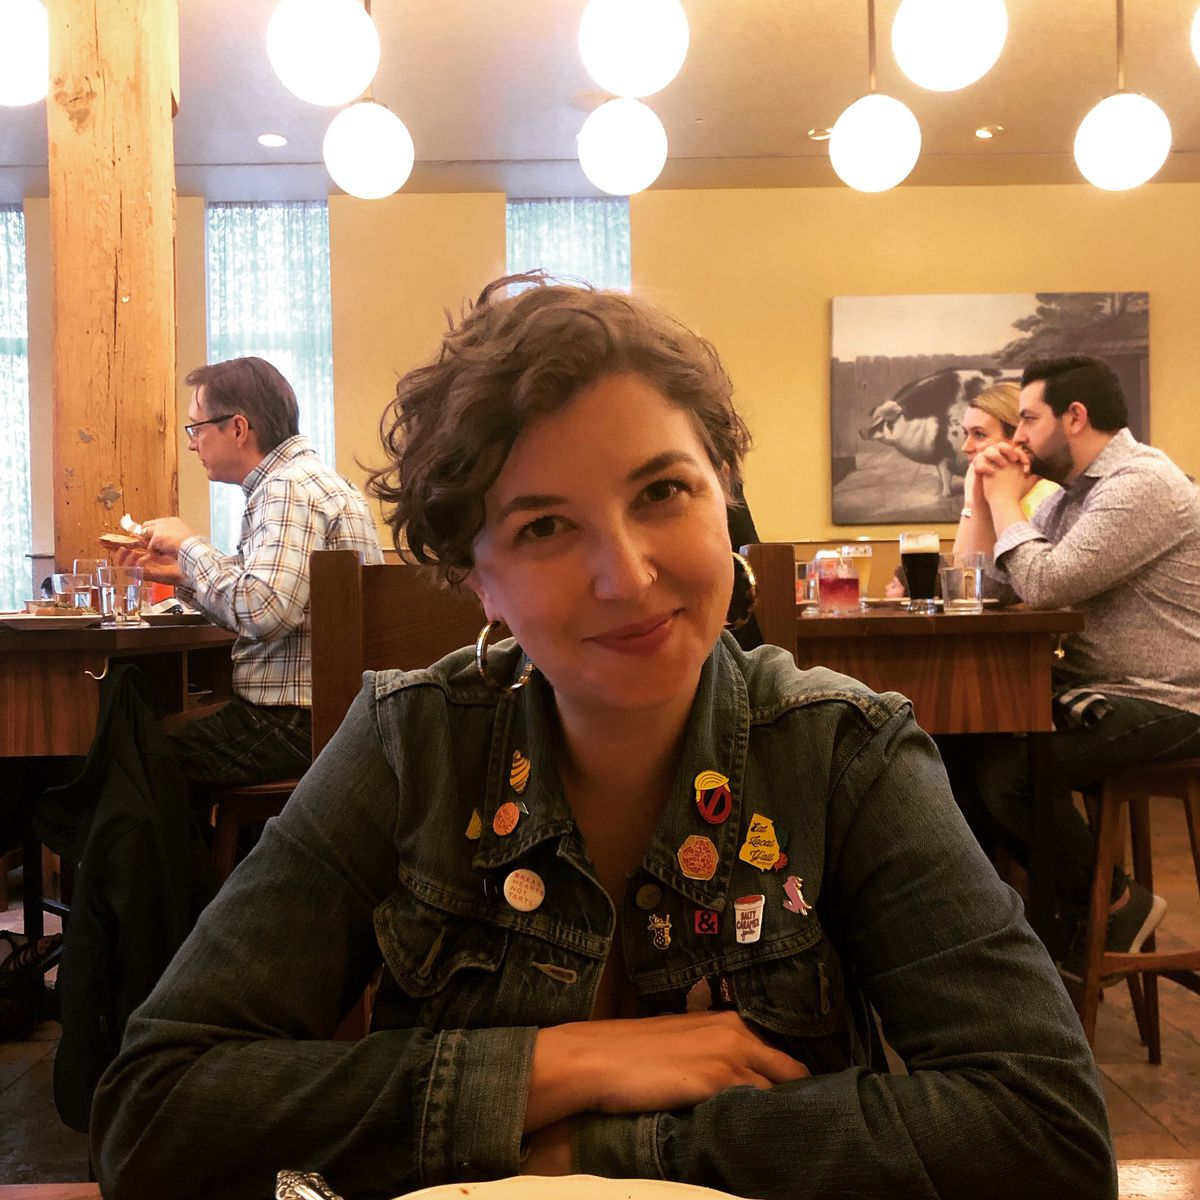 Pastry chef and Little Tart Bakeshop owner Sarah O'Brien